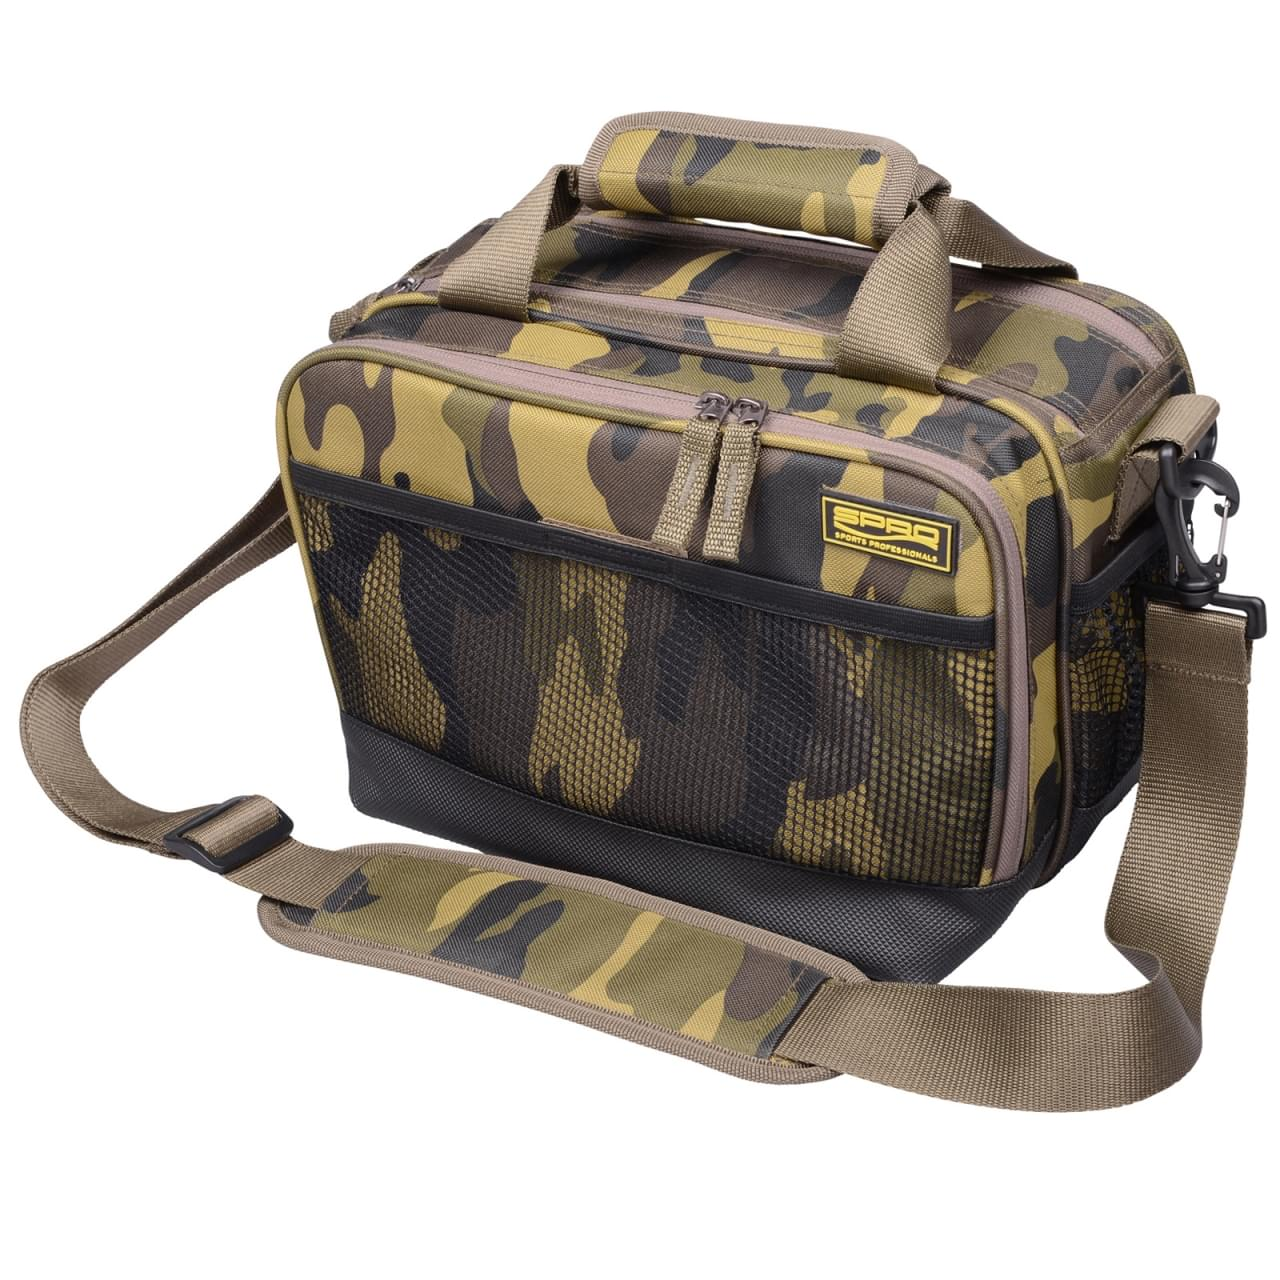 Spro Camouflage Tackle Bag 2